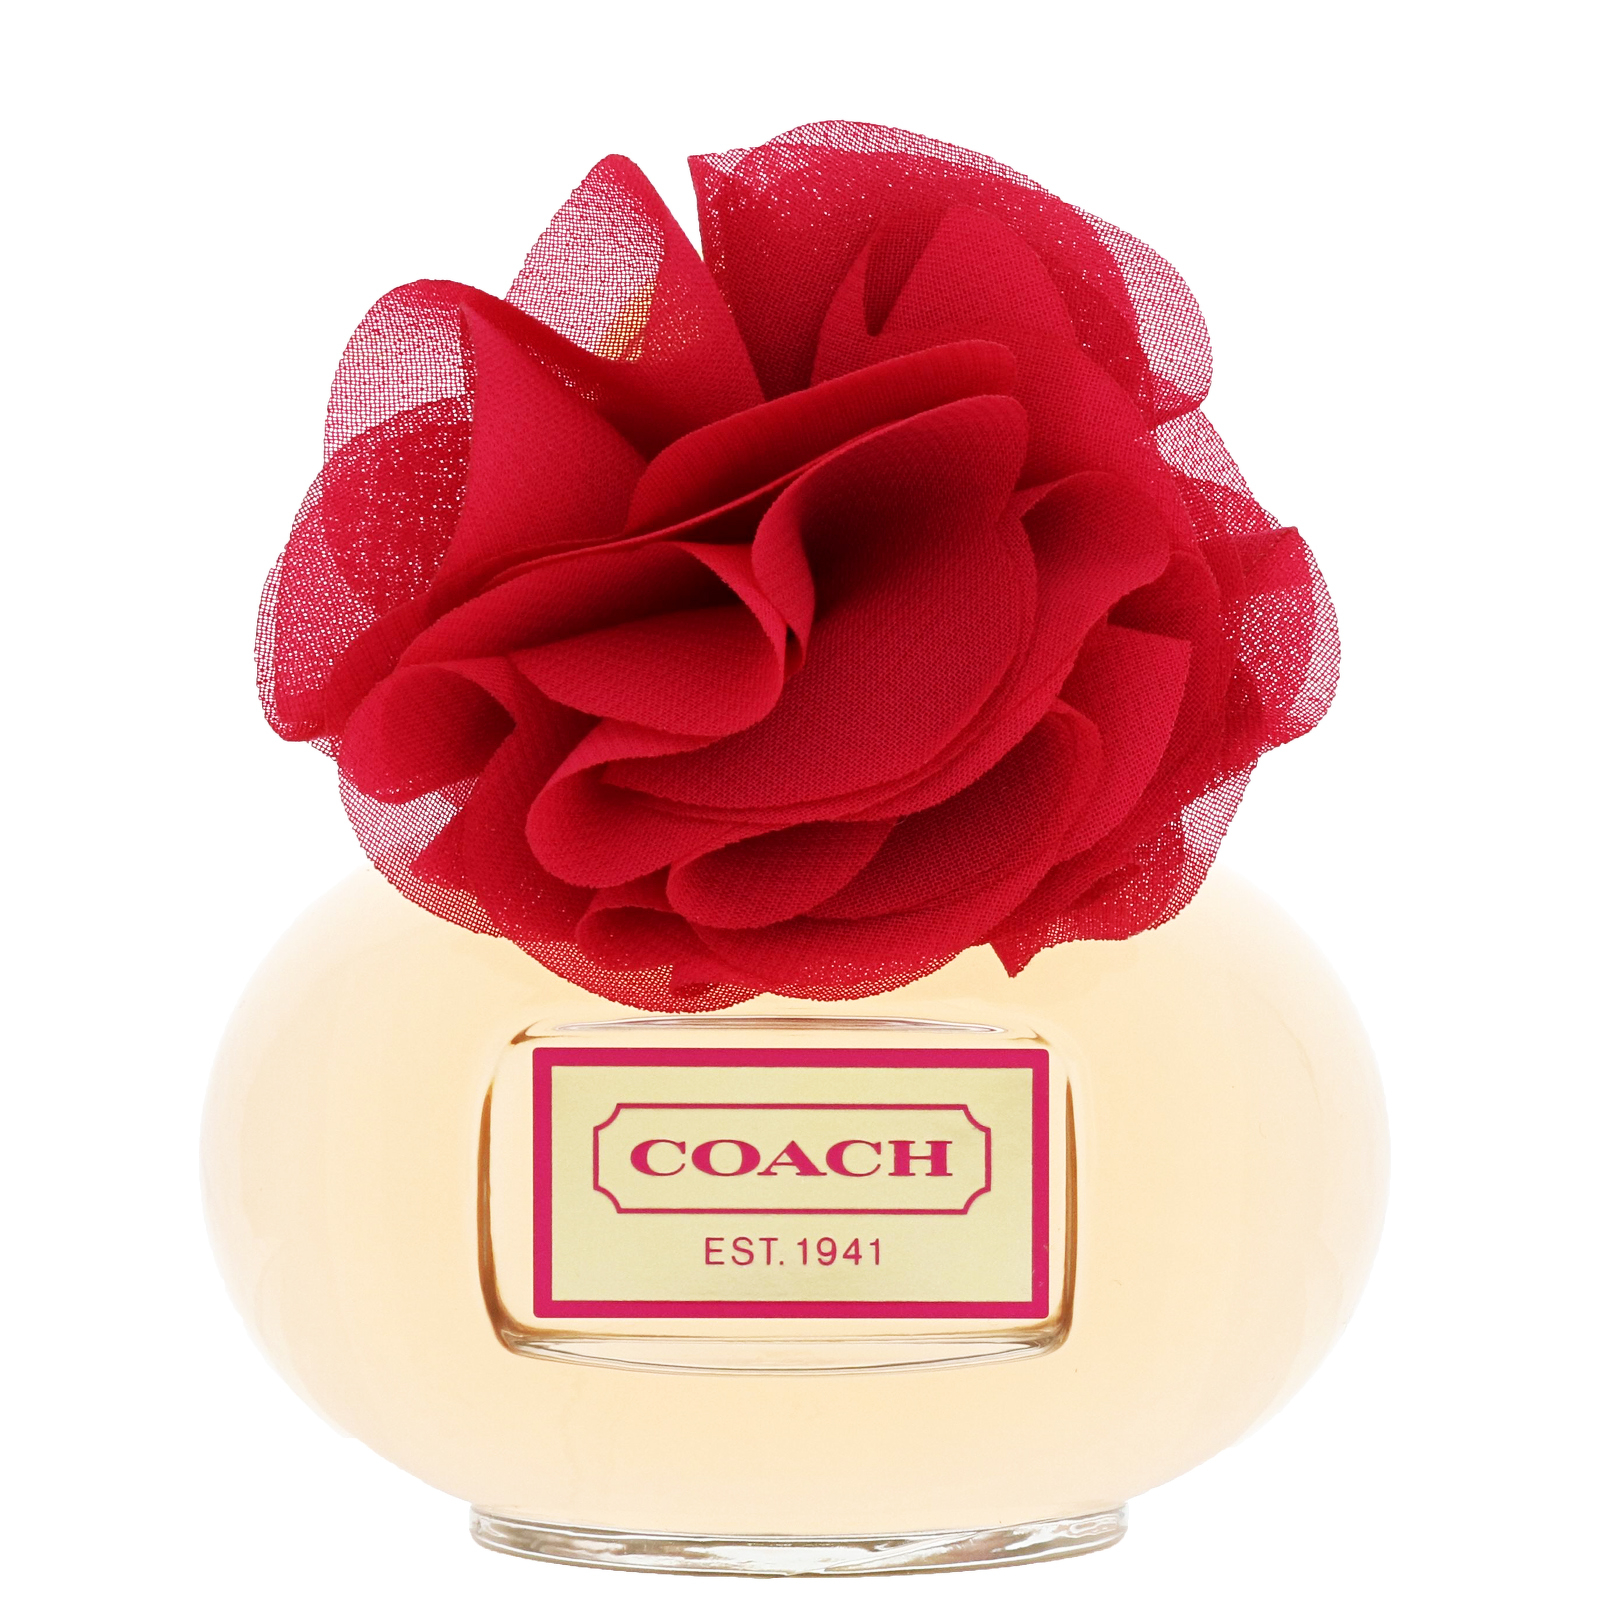 Coach Poppy Freesia Blossom Eau de Parfum Spray 100ml